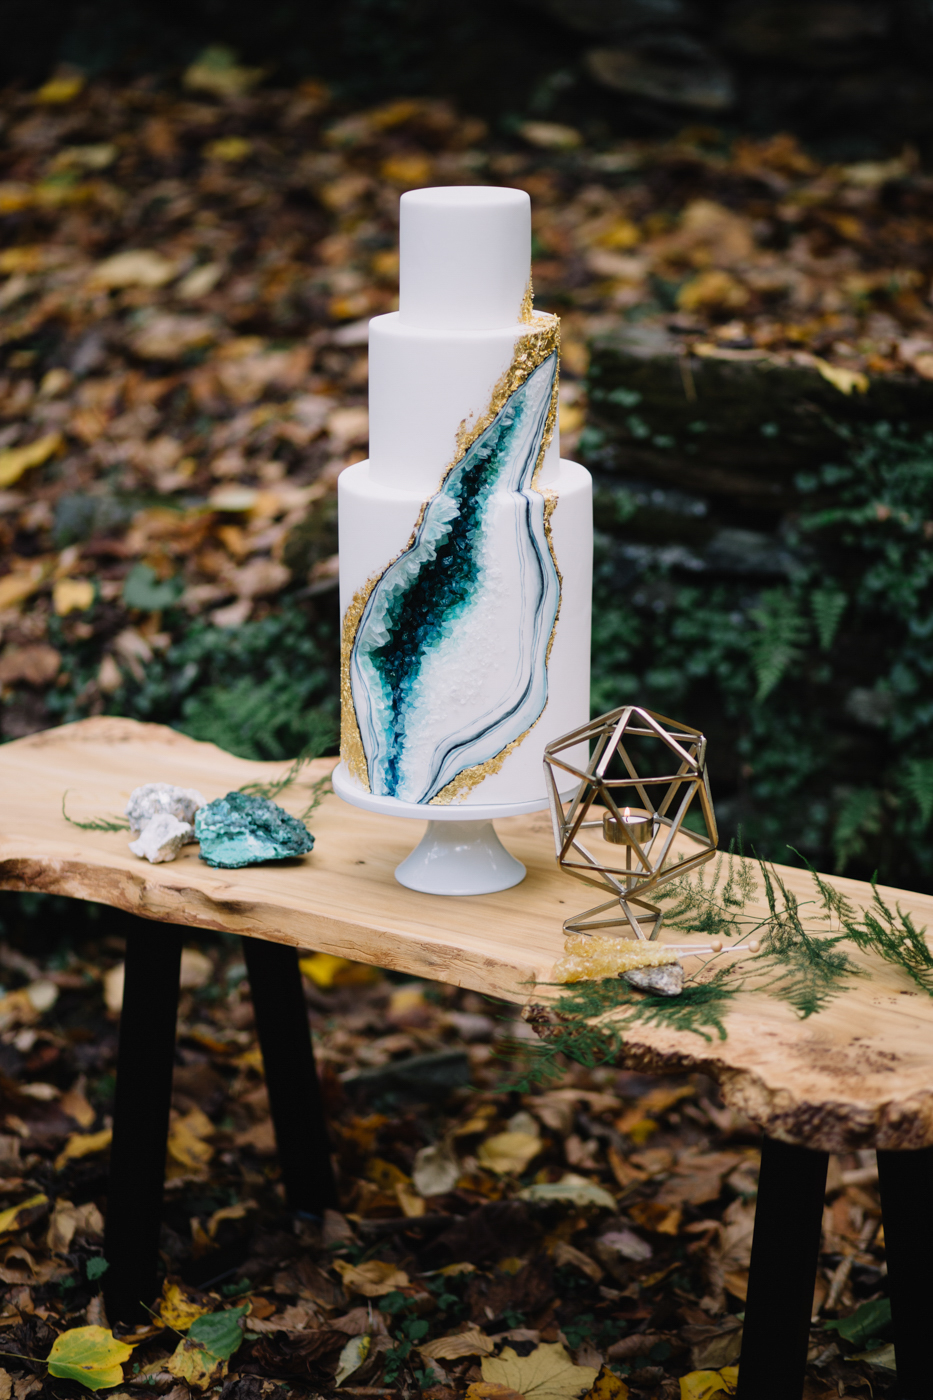 philadelphia-wedding-photographer-valley-green-inn-boho-geode-whimsical-philly-waterfall-weddings-photography-fine-art-13.jpg